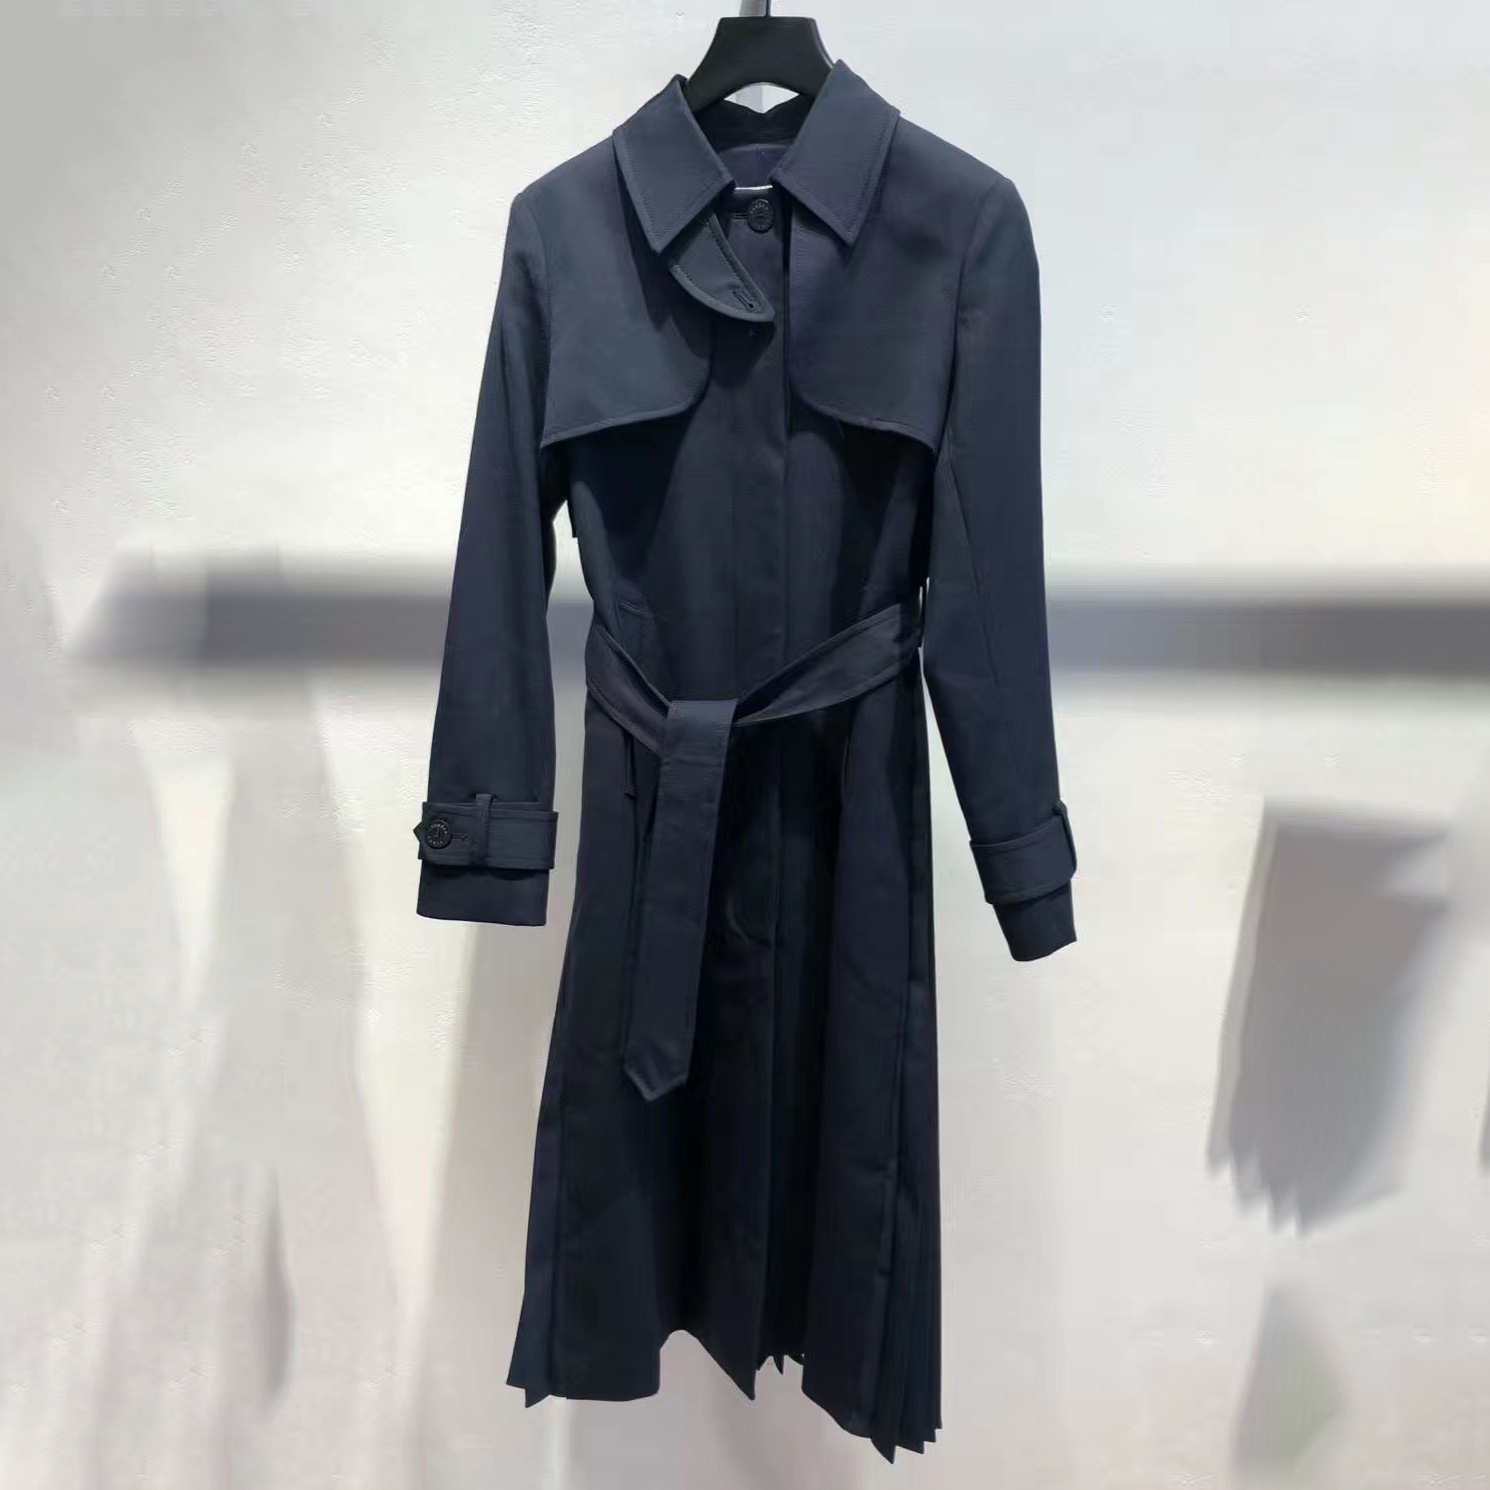 Women Trench 2019 Autumn and Winter New Temperament Pleated Stitching Tie Bow Windbreaker JacketTrench